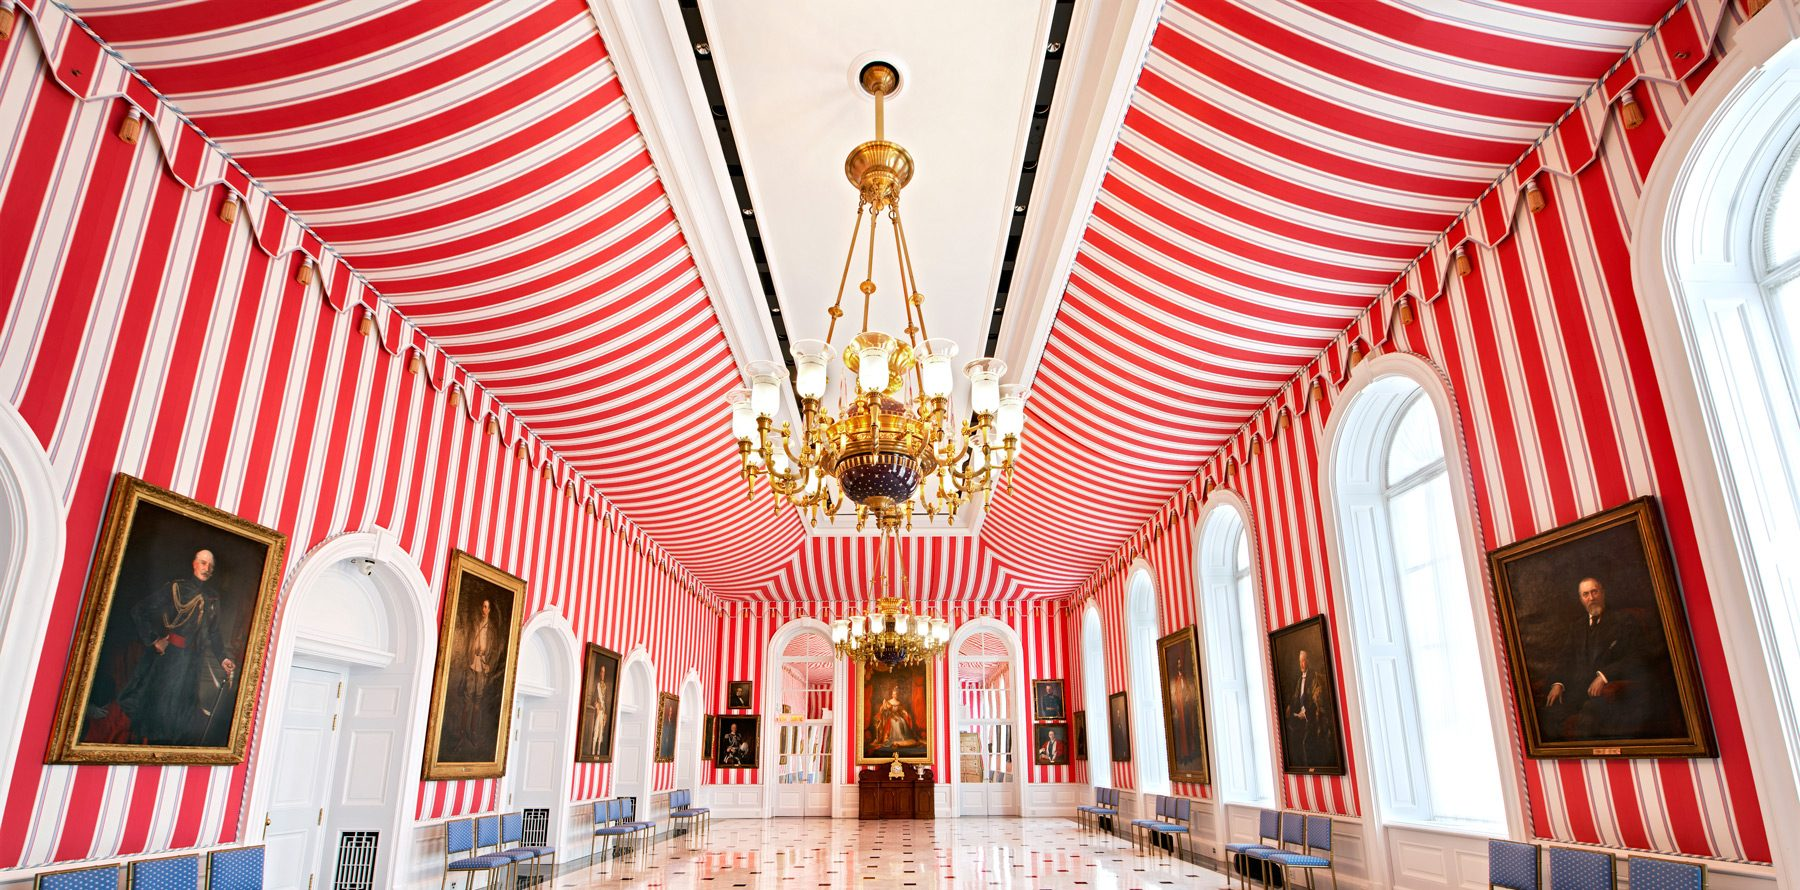 None so unusual — Rideau Hall's the Tent Room